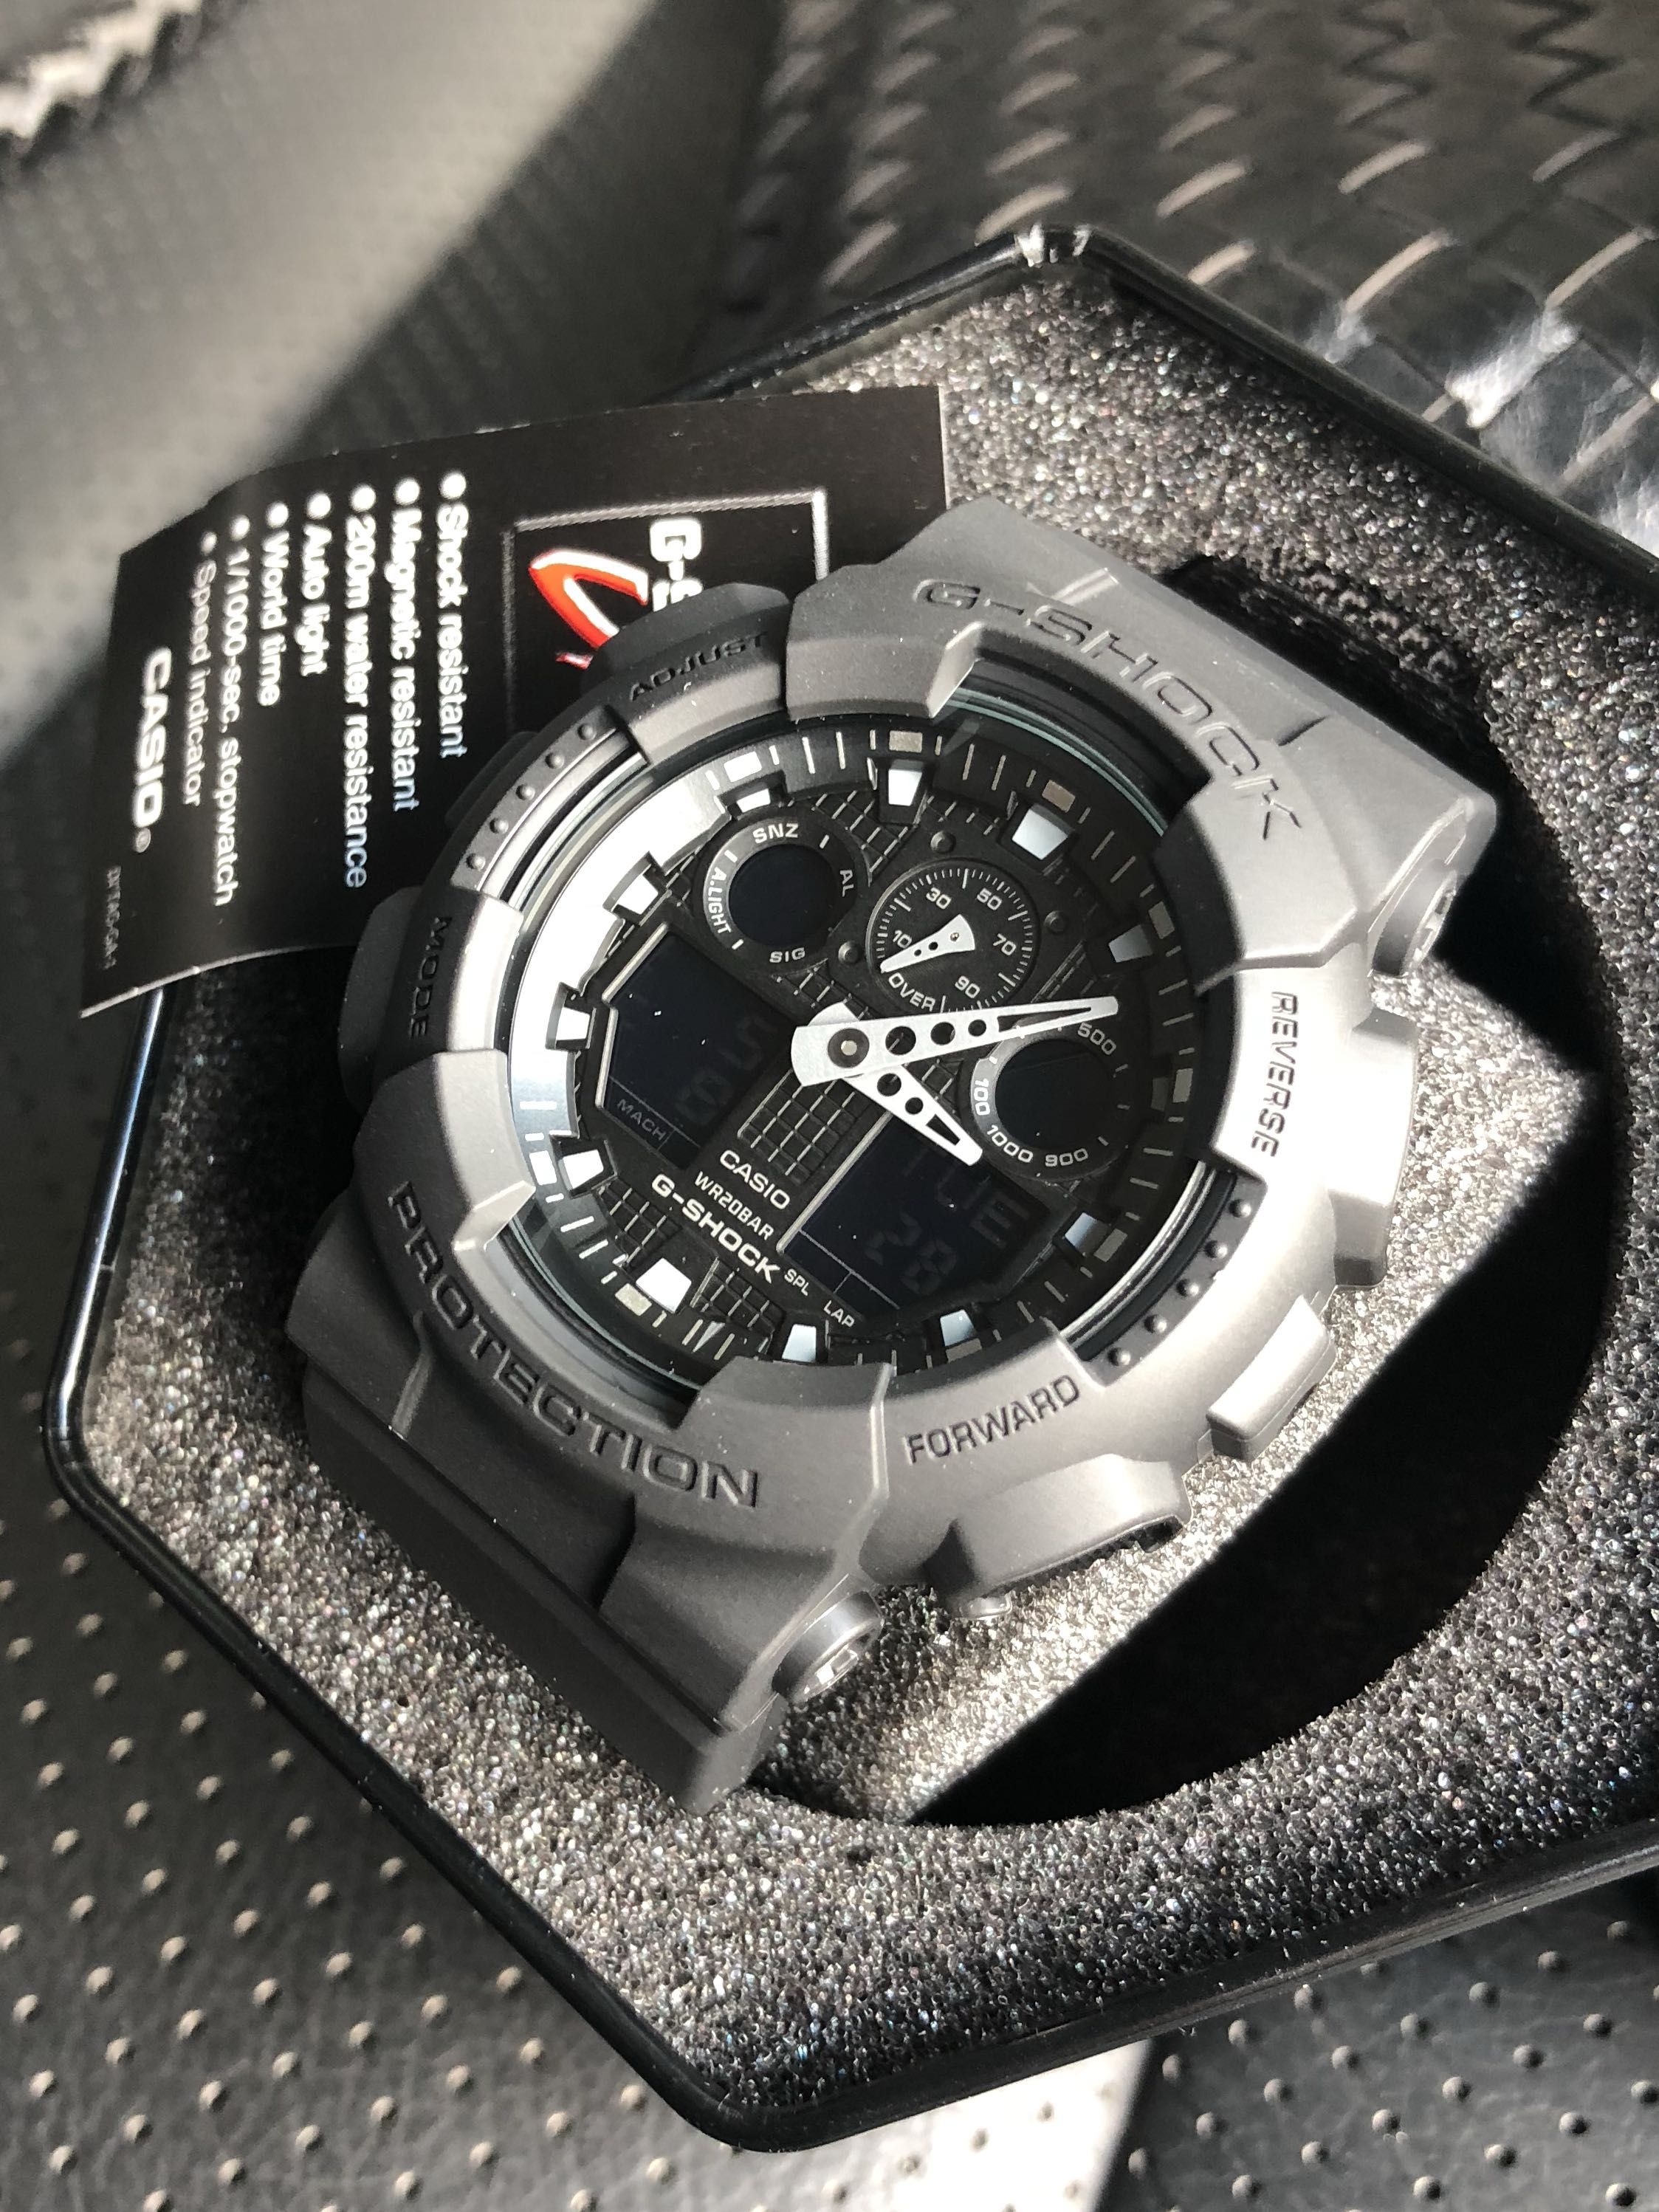 Authentic Original G Shock Ga 100bbn Cordura Nylon Band Military Matte Tactical Black Series Casio Sale Offer Brand New In Box Limited Stock First